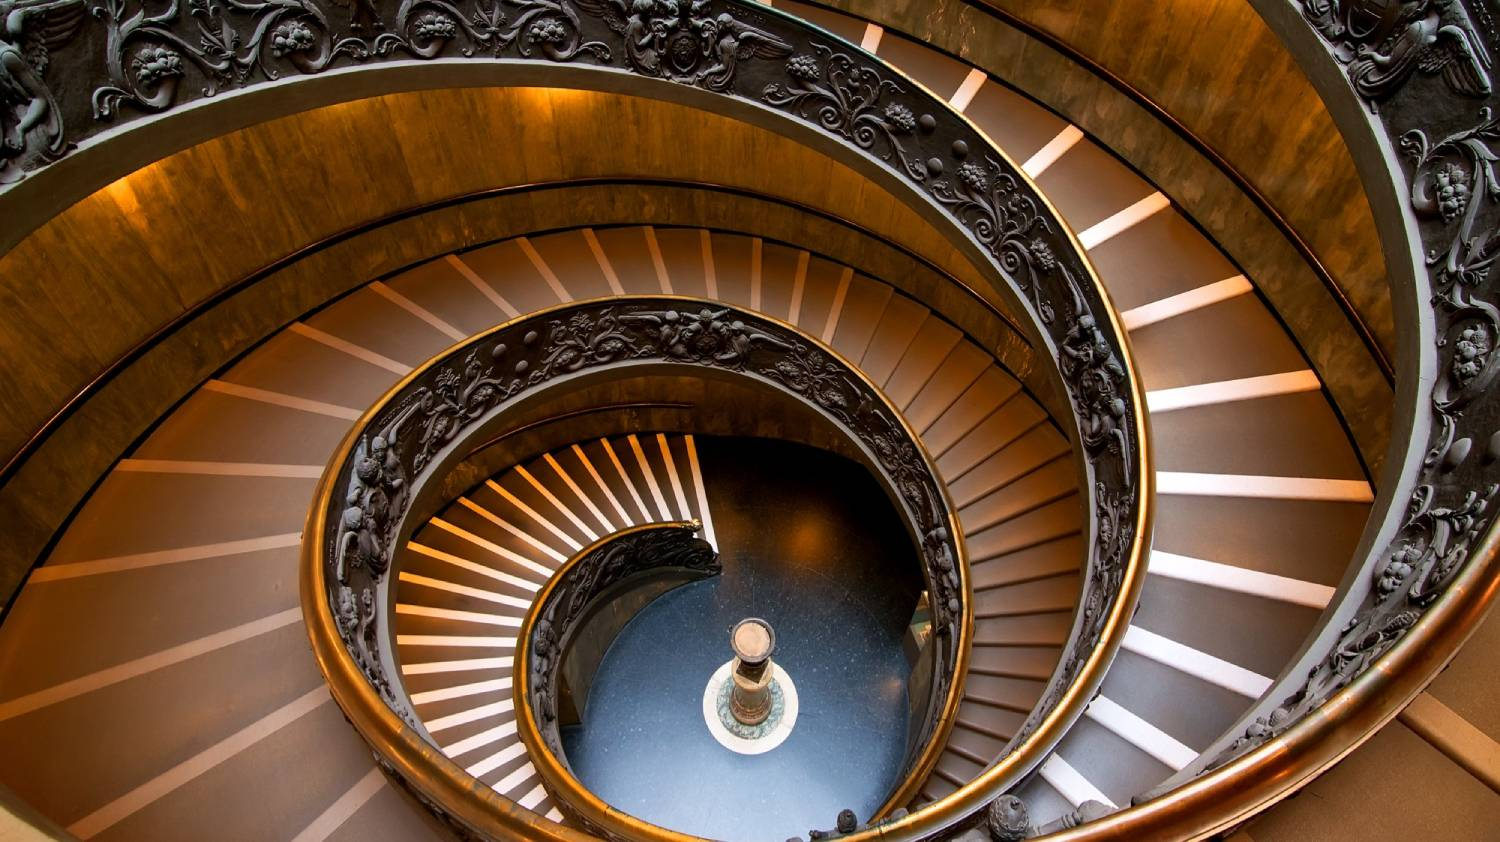 The Vatican - Things To Do In Rome